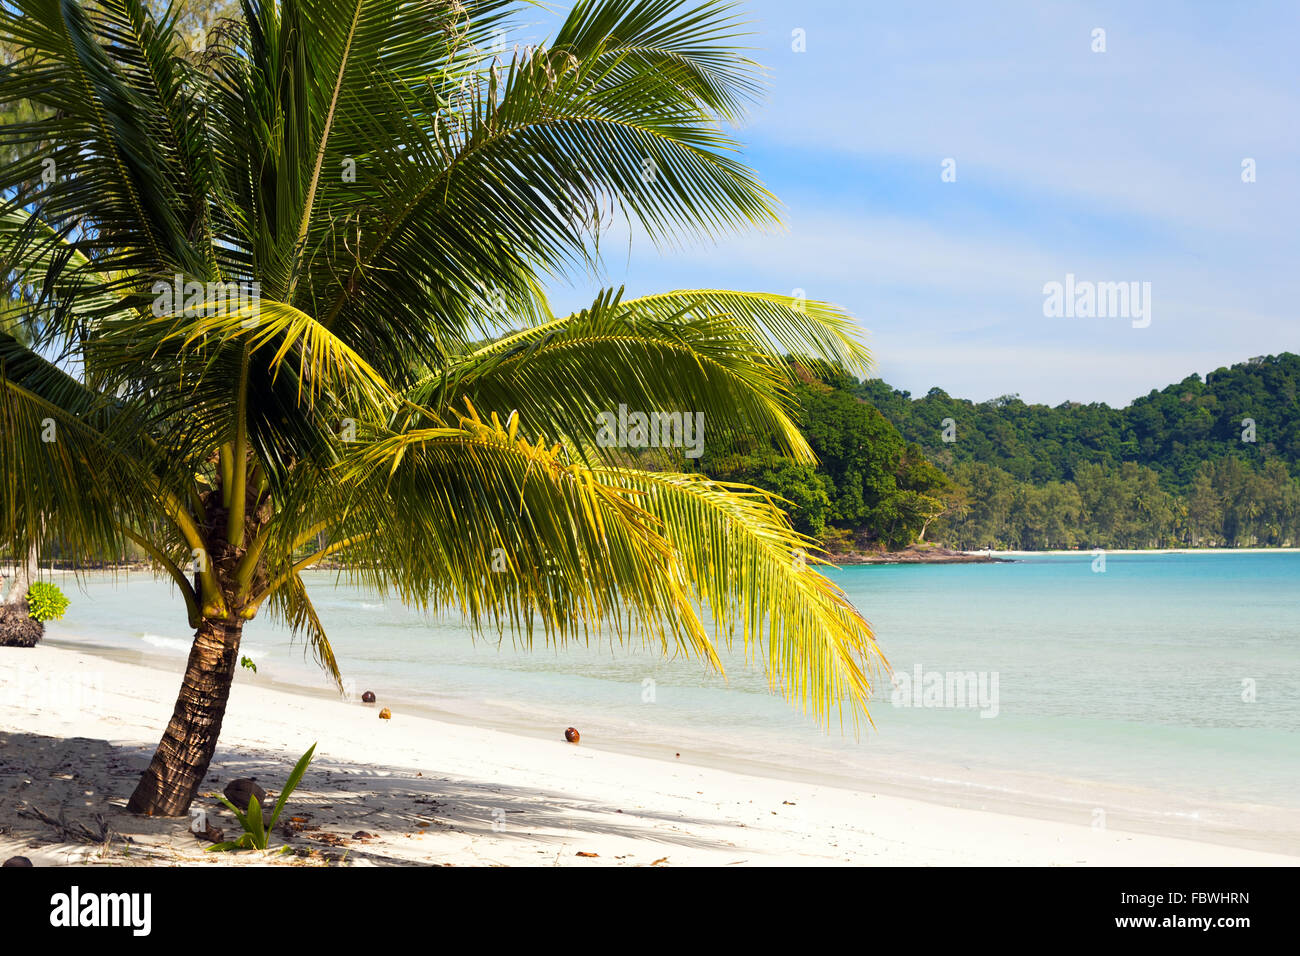 Beach on the Koh Kood island, Thailand - Stock Image